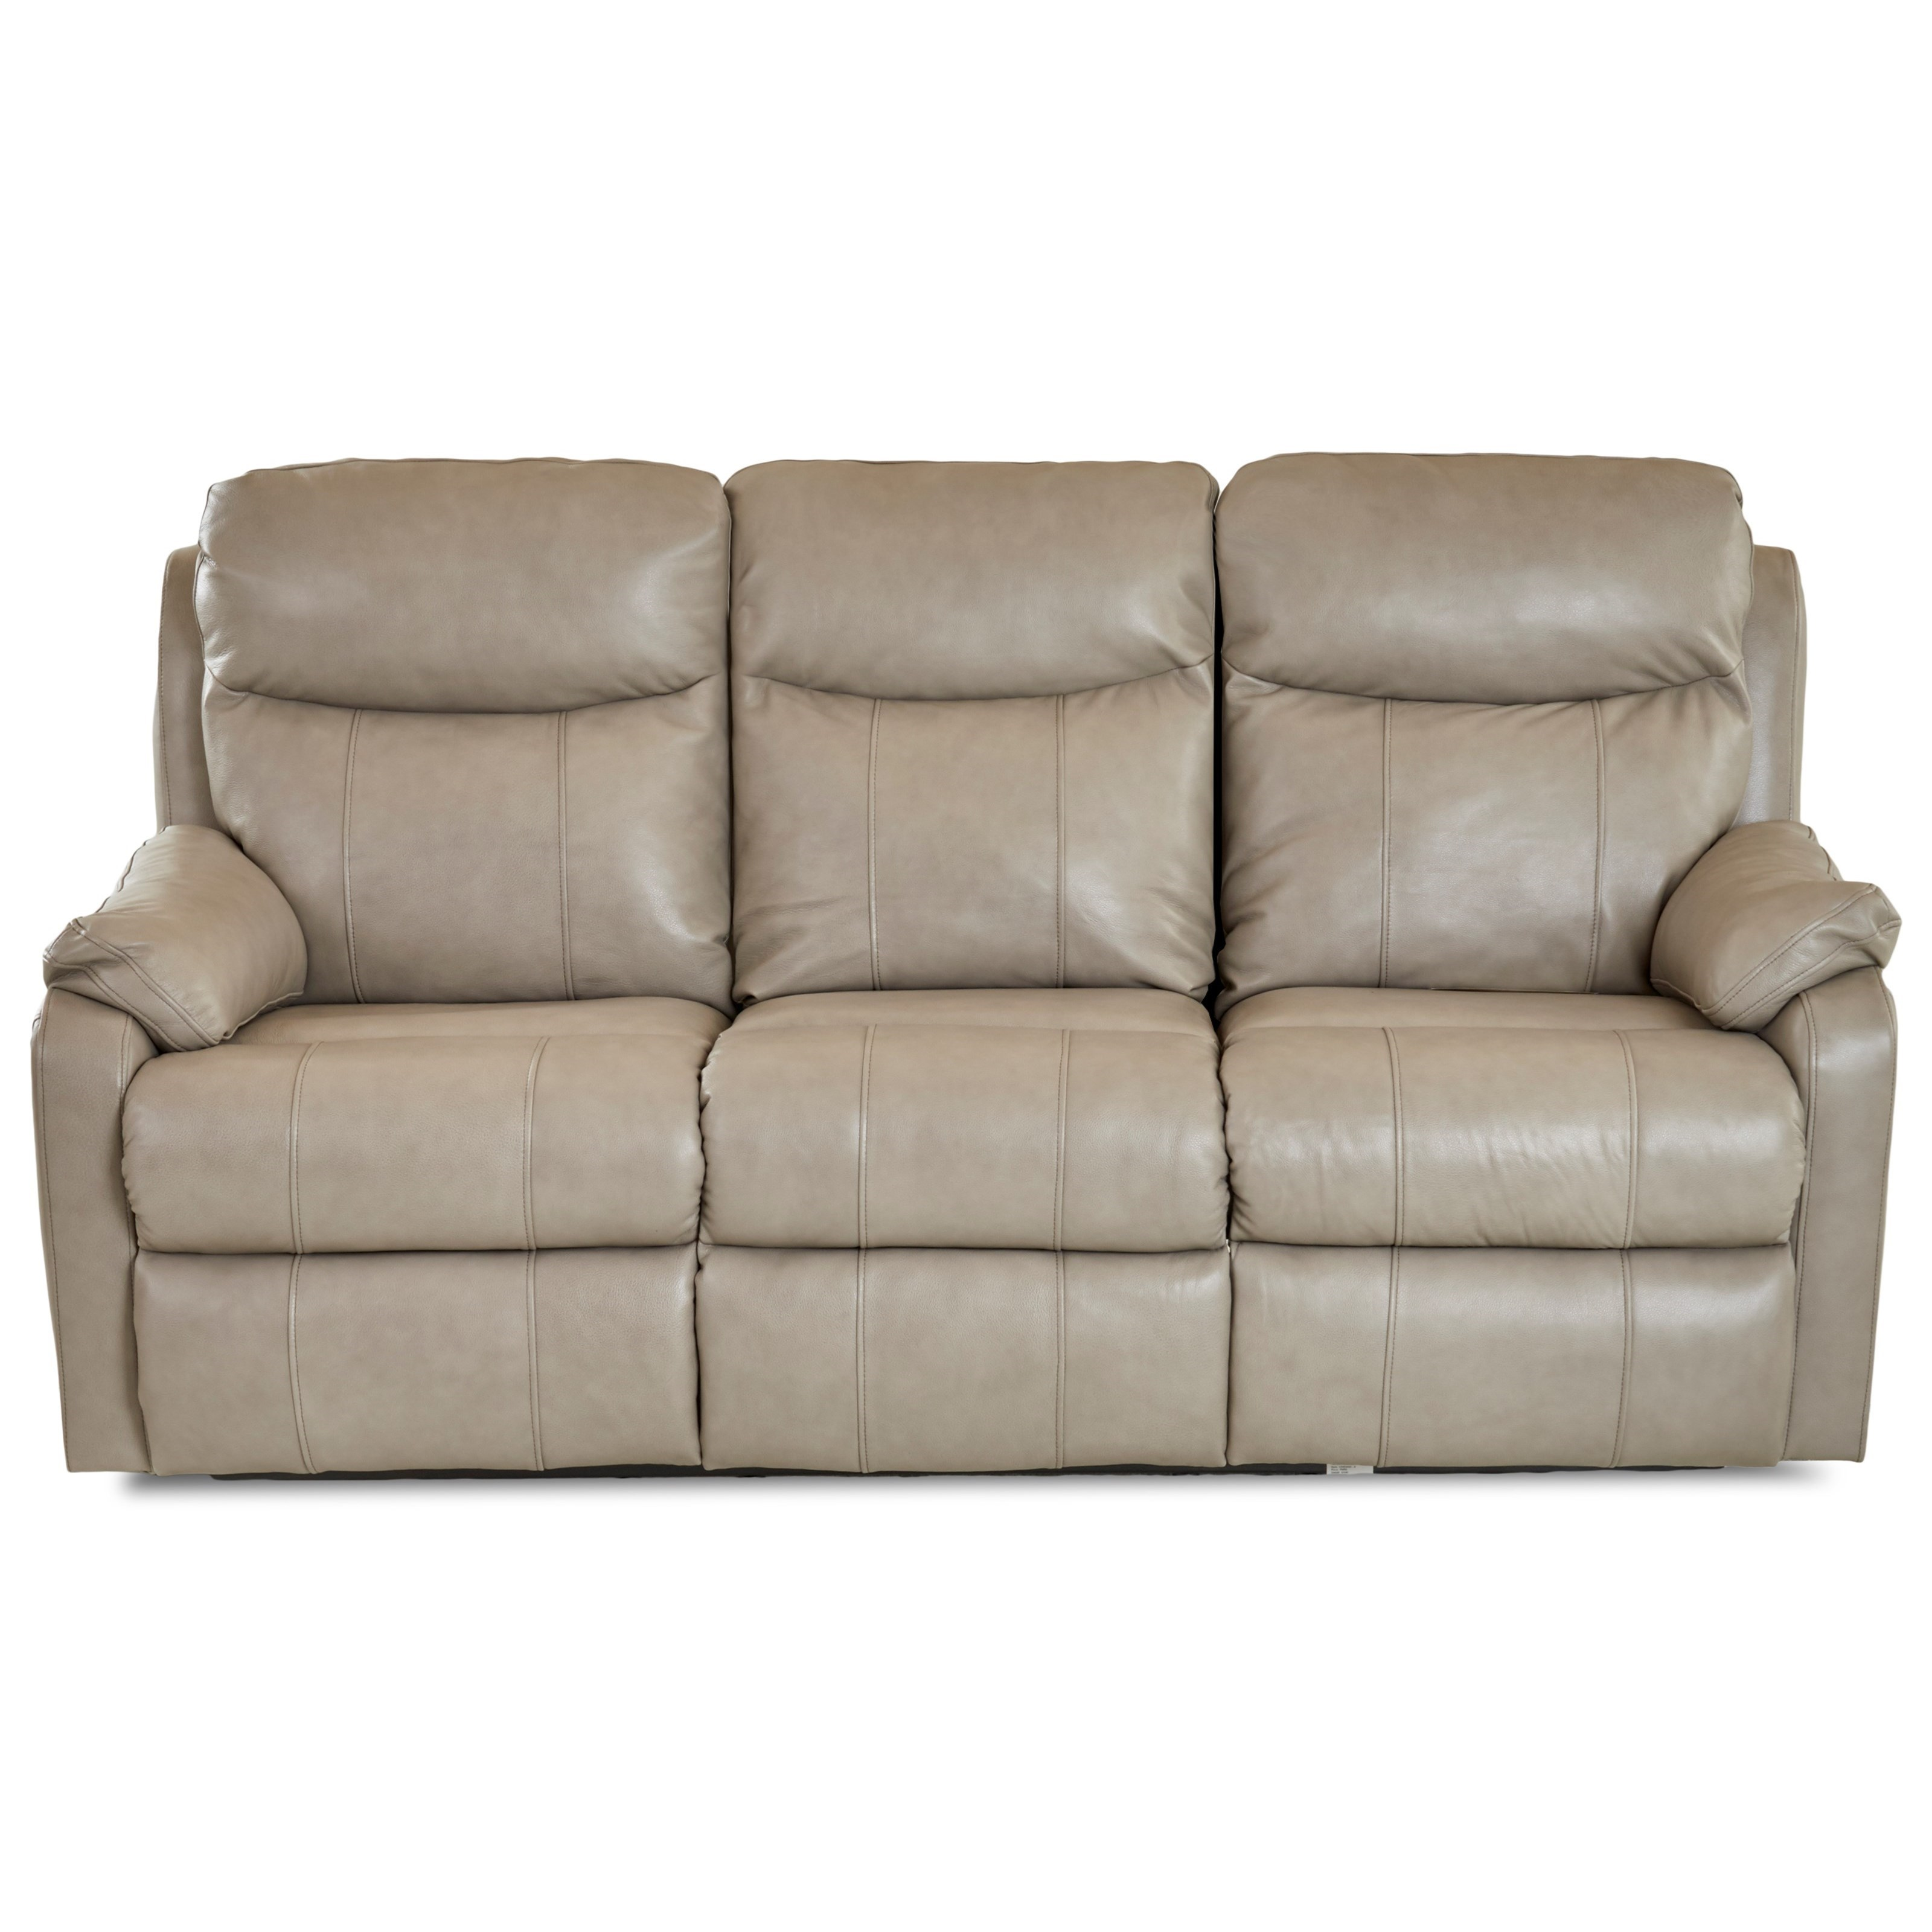 Solitaire Power Reclining Sofa by Klaussner at Catalog Outlet